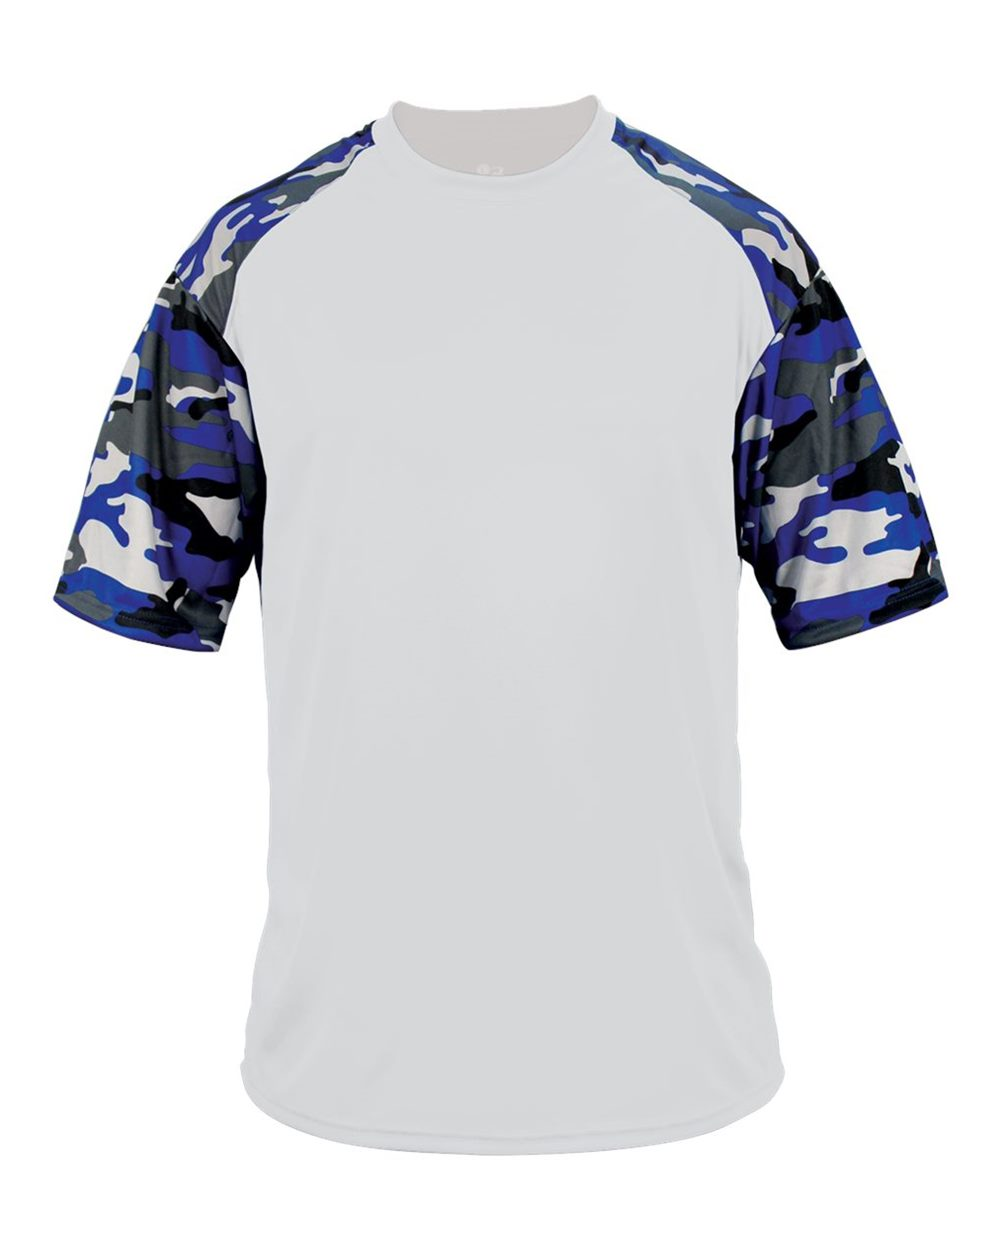 7a0e12770 Custom Blue Camo T Shirts - DREAMWORKS